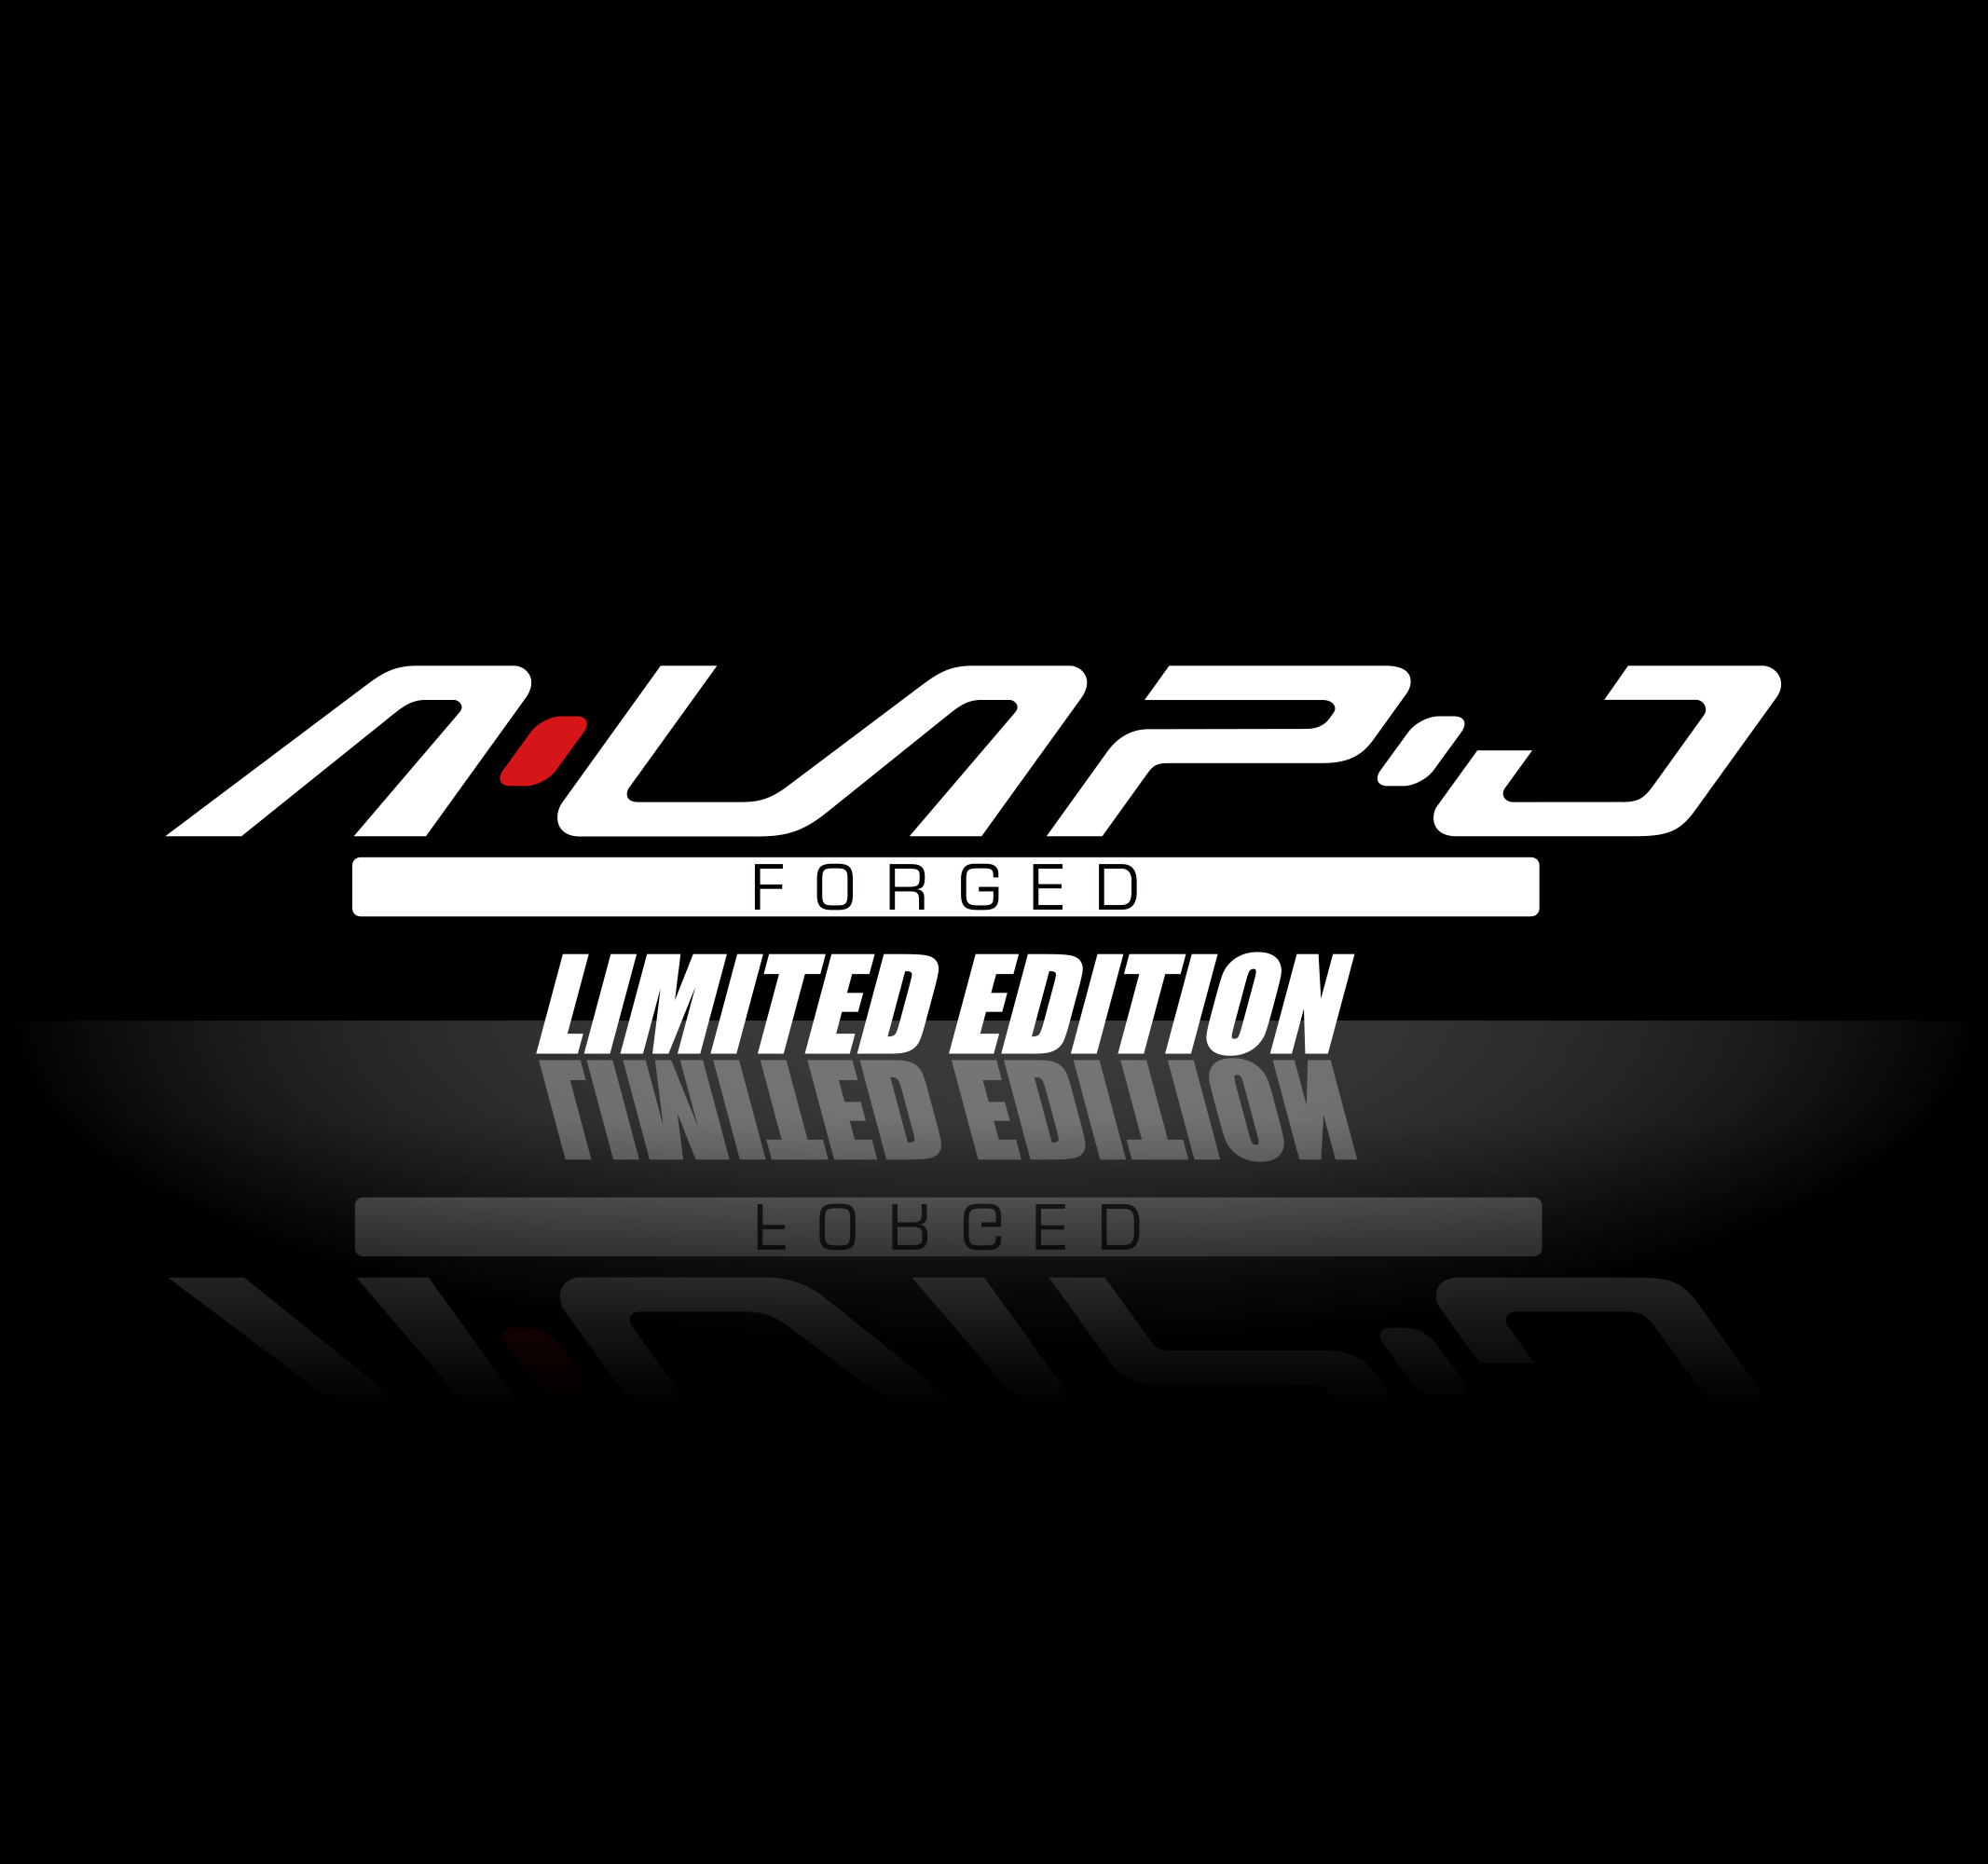 ALAP-J 2019 LIMITED EDITION